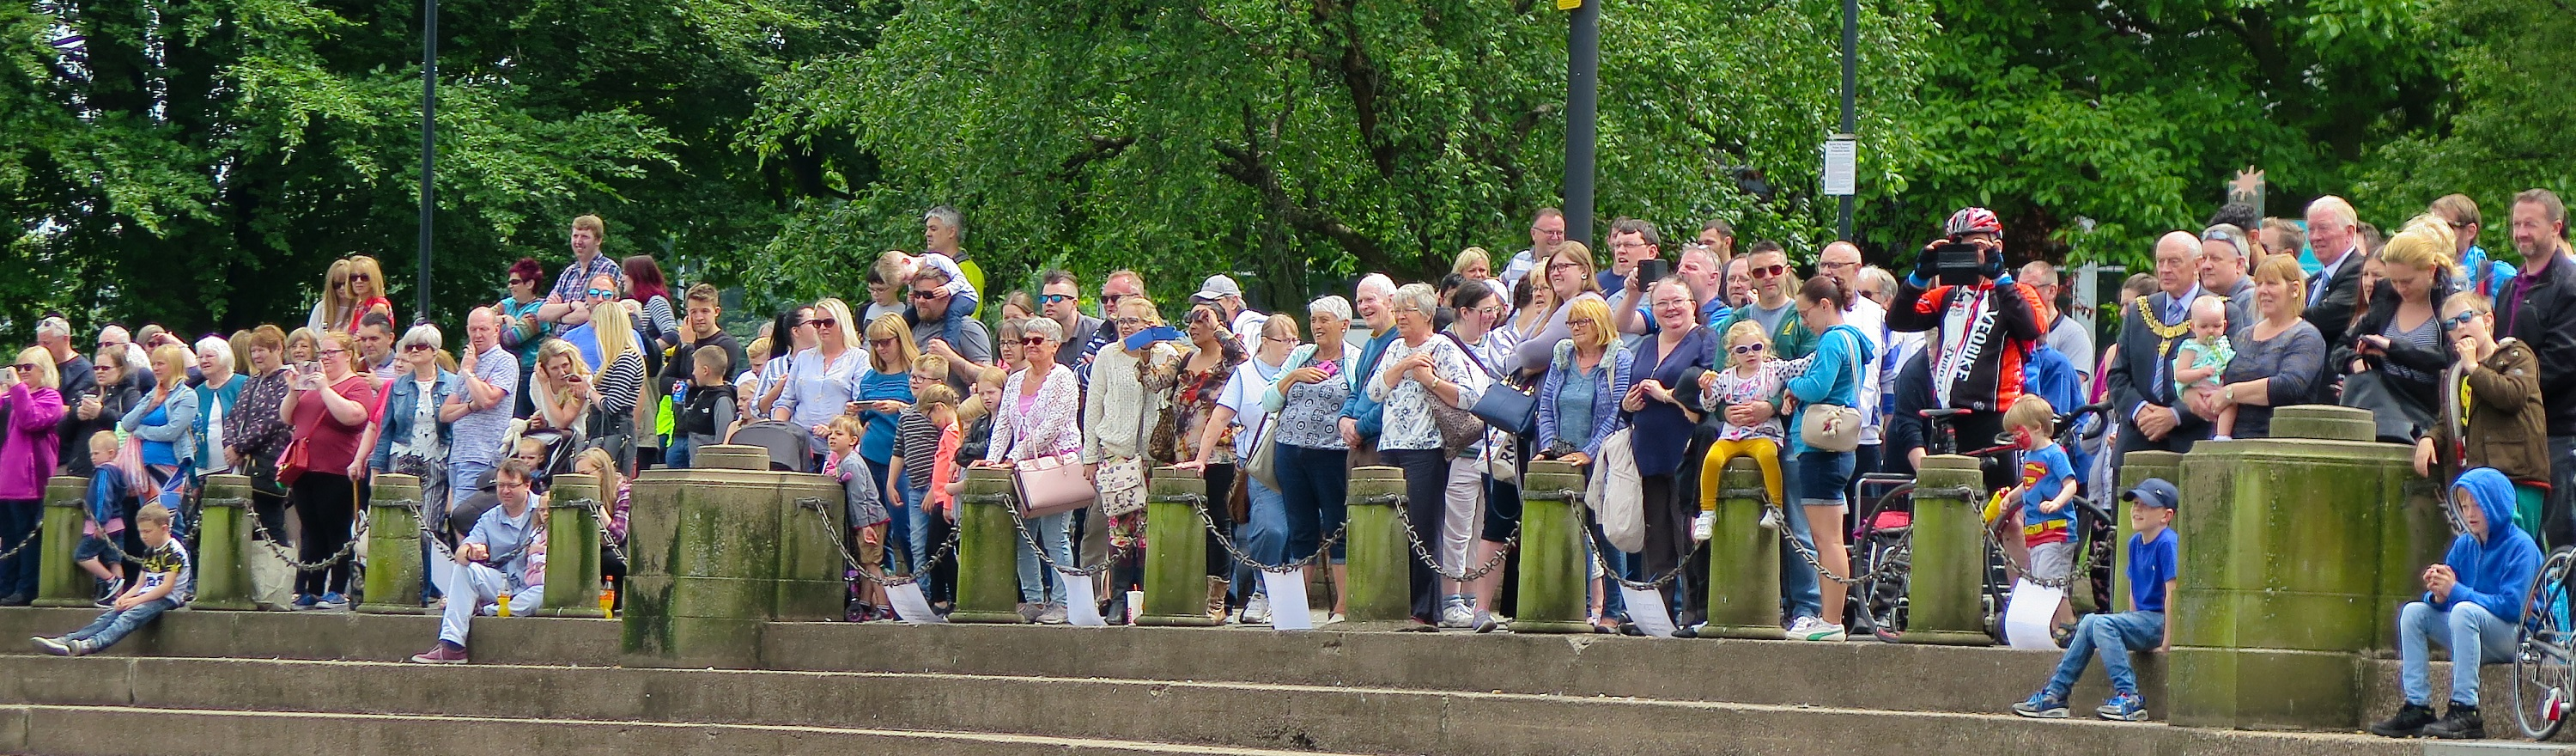 Image showing the crowds watching the 2018 duck race